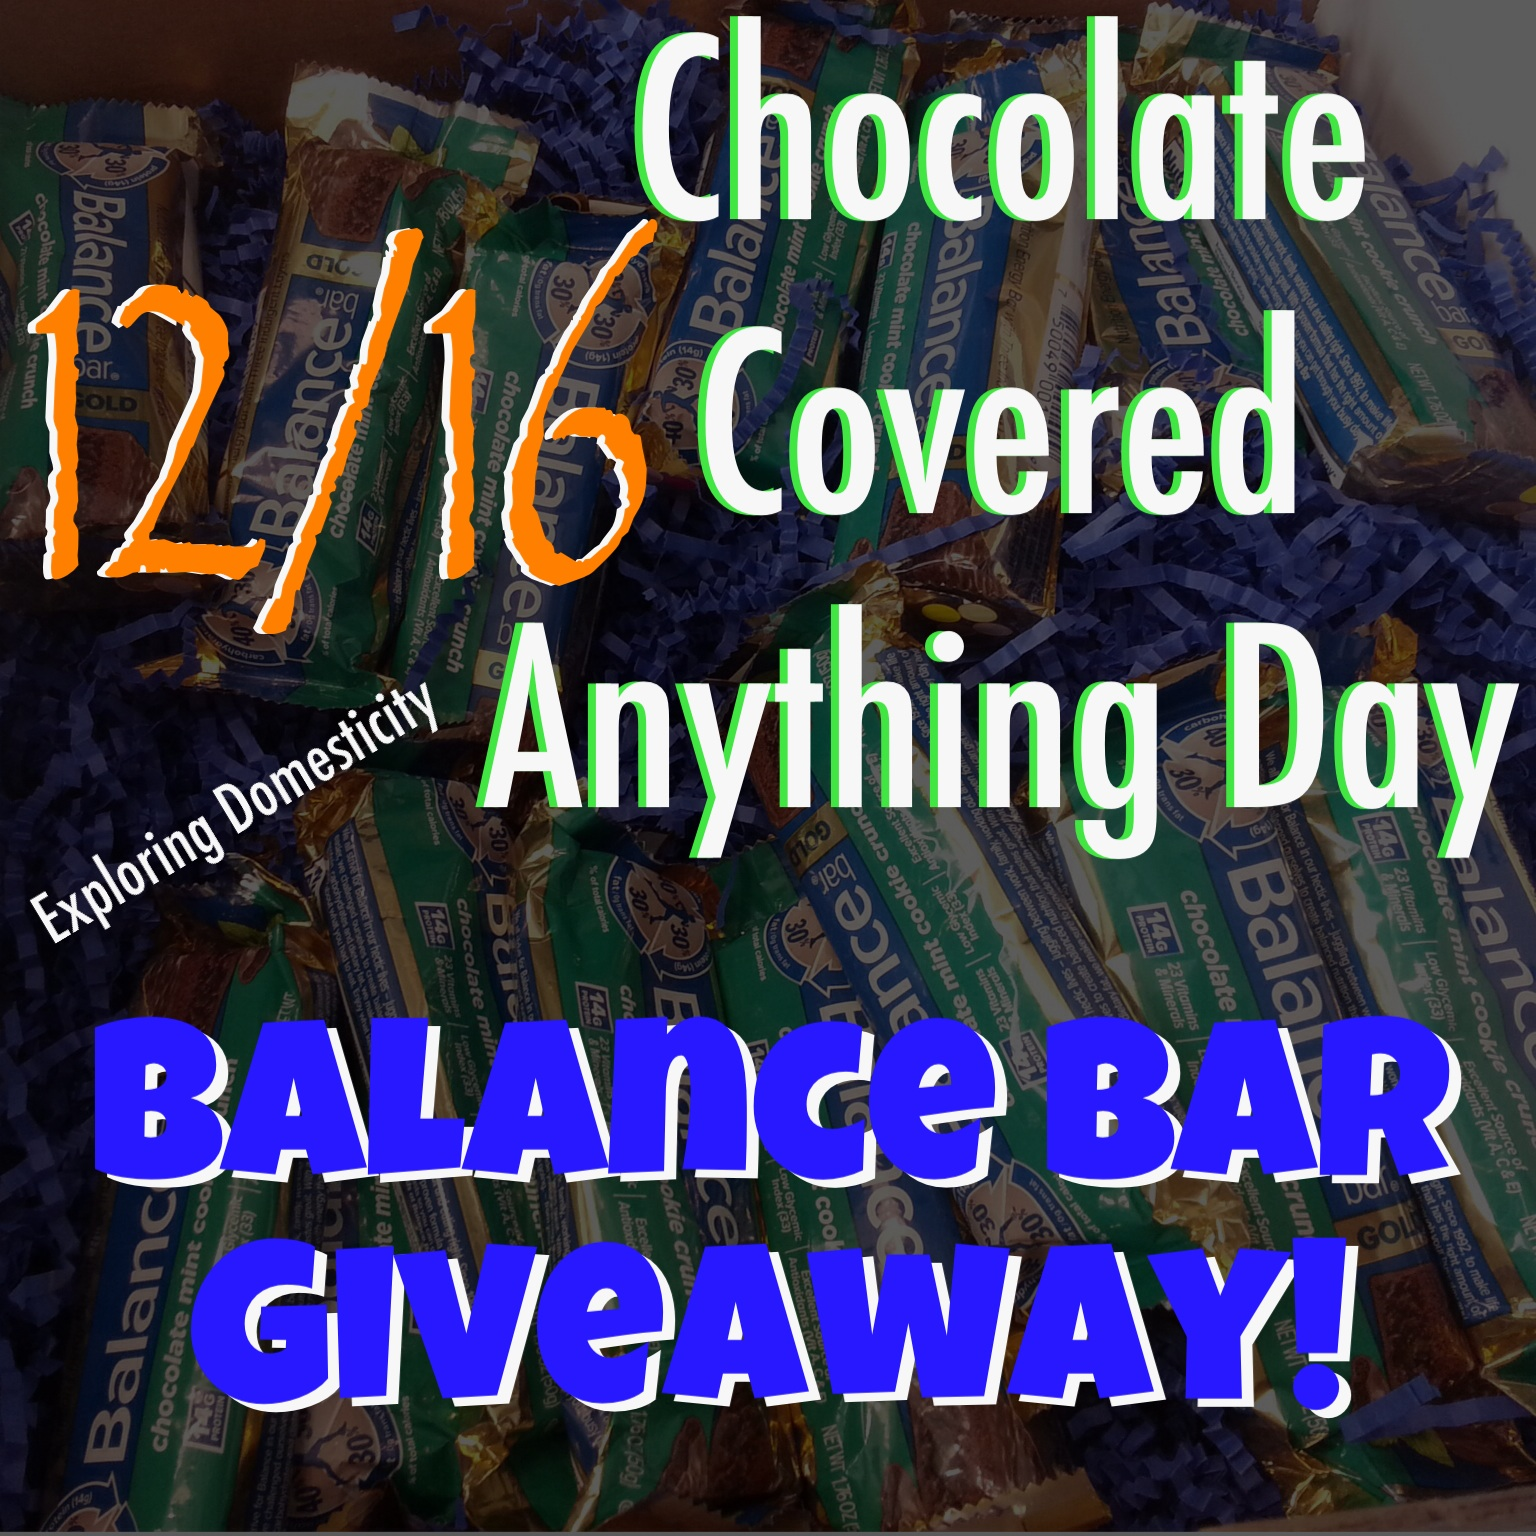 Chocolate Covered Everything Balance Bar Giveaway